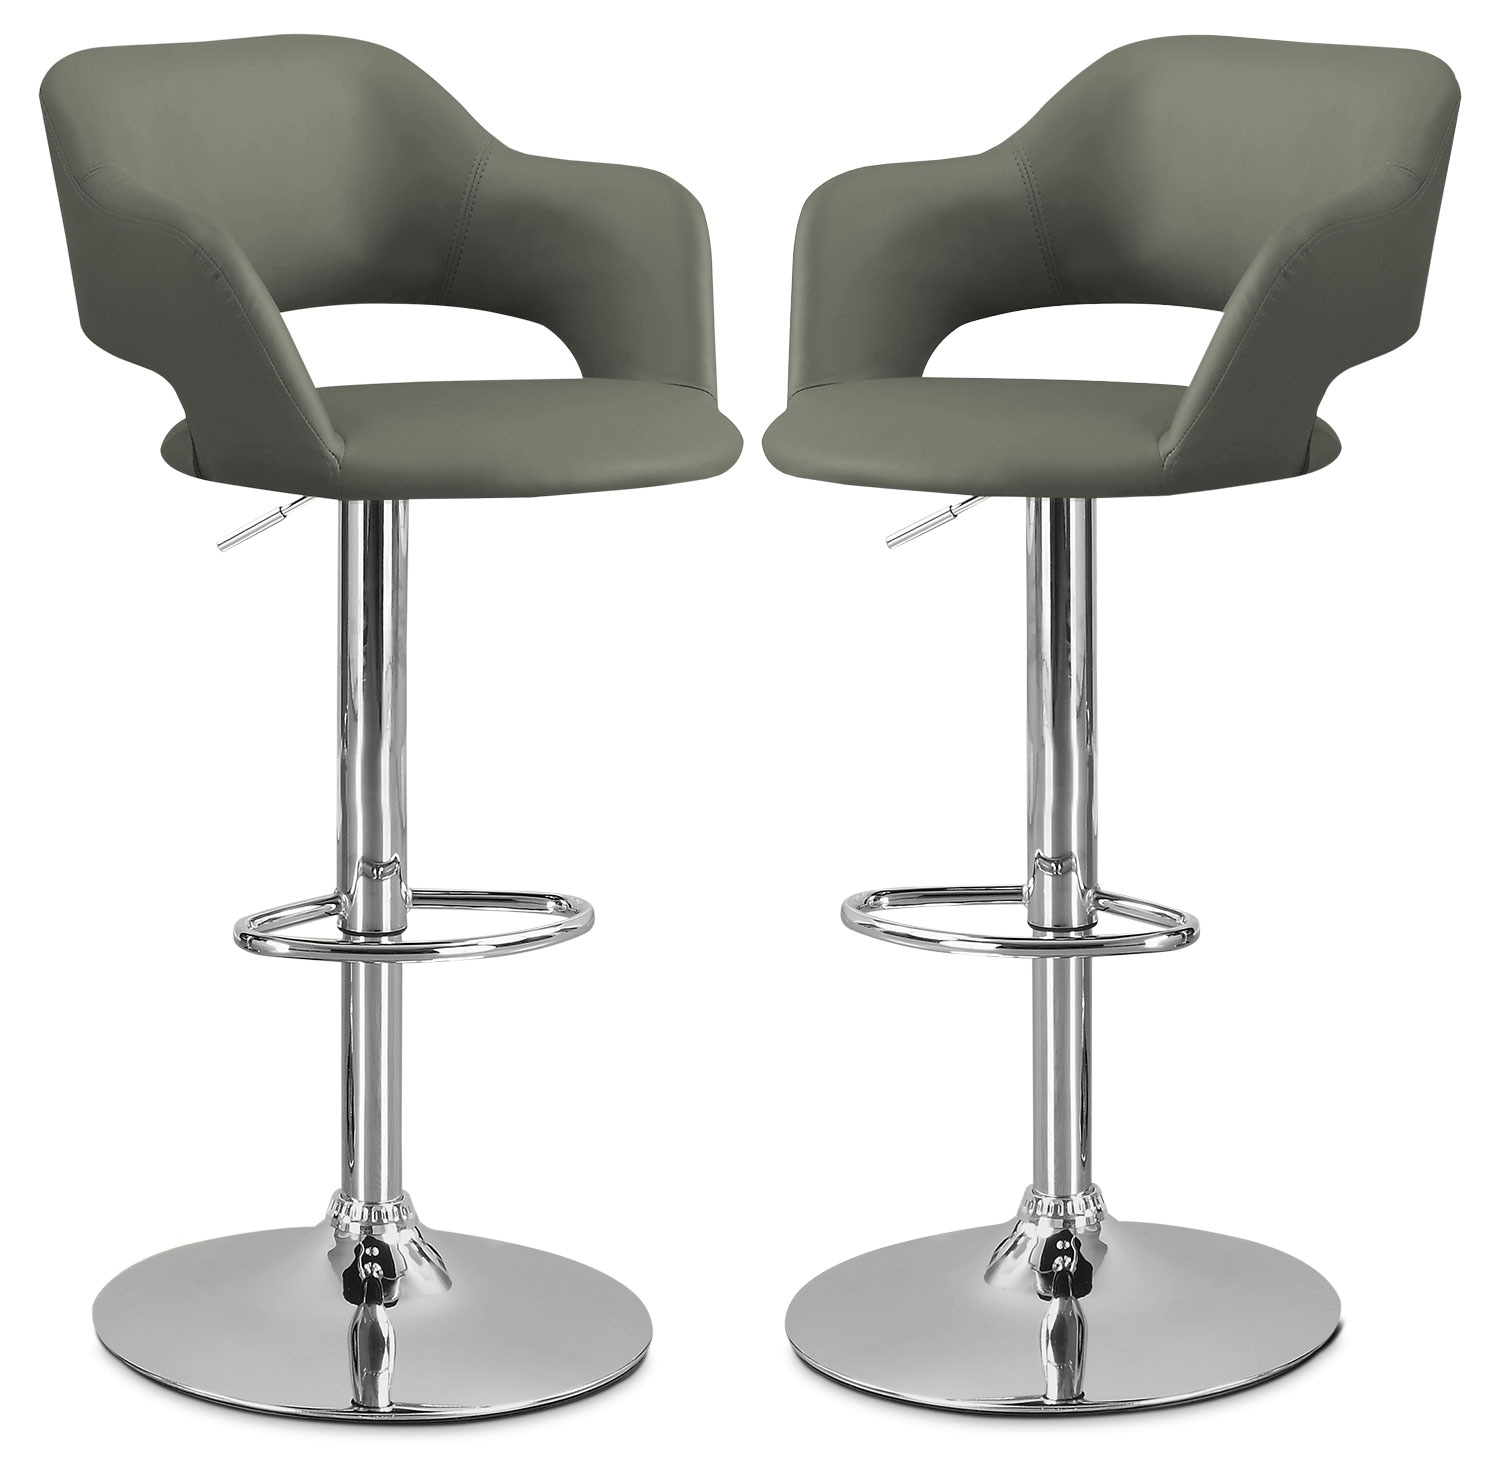 stool chair images shiatsu massager monarch hydraulic contemporary bar set of 2  grey